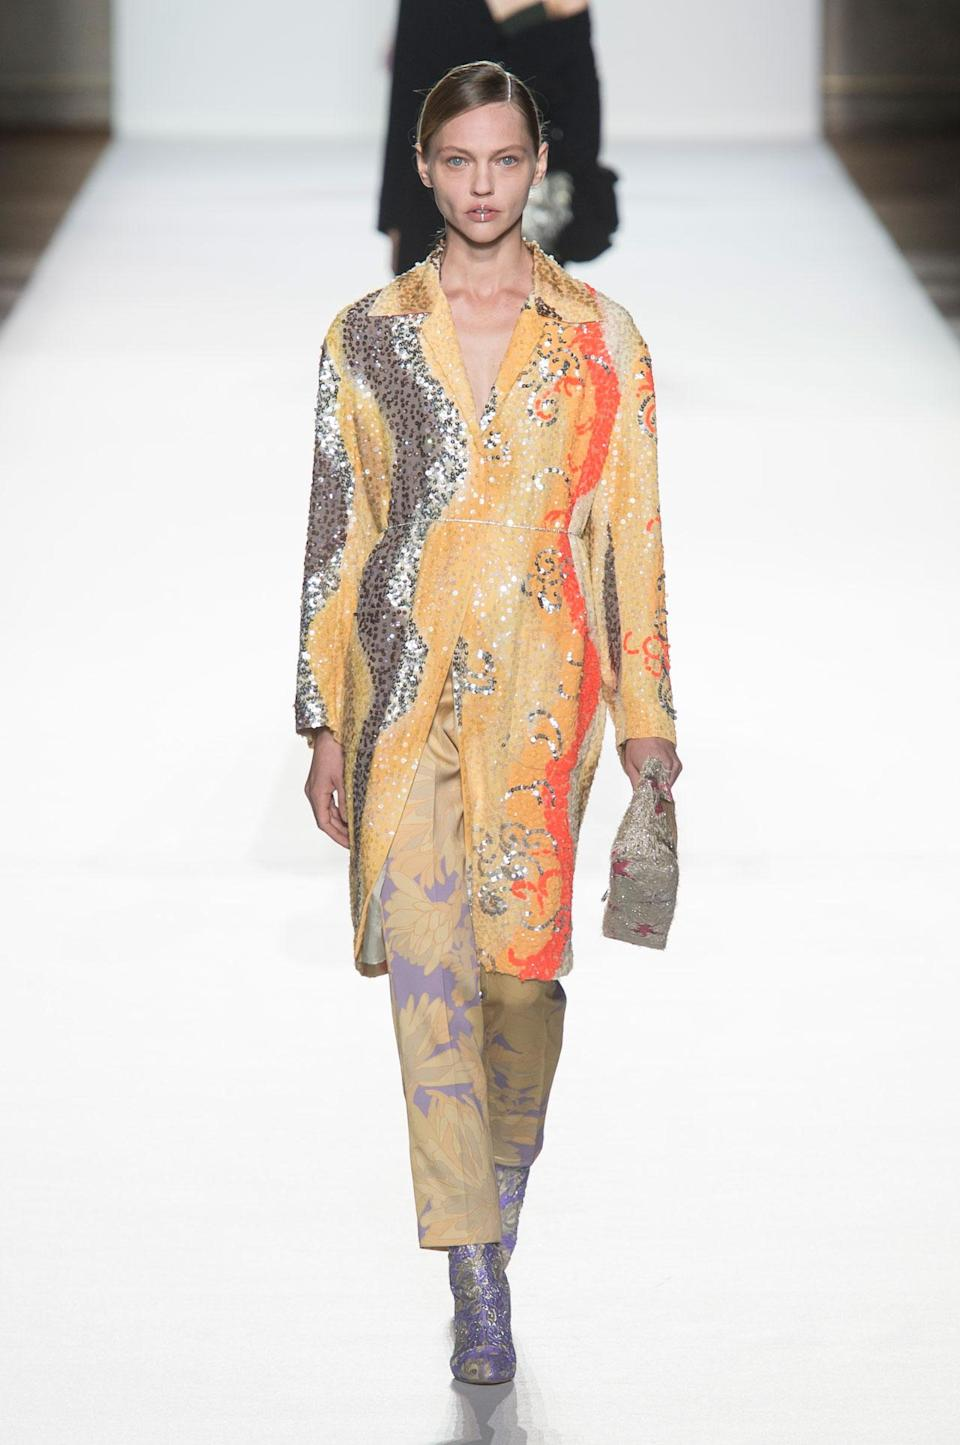 <p>A dreamy orange, yellow, and silver sequin coat from the SS18 Dries Van Noten collection. (Photo: ImaxTree) </p>